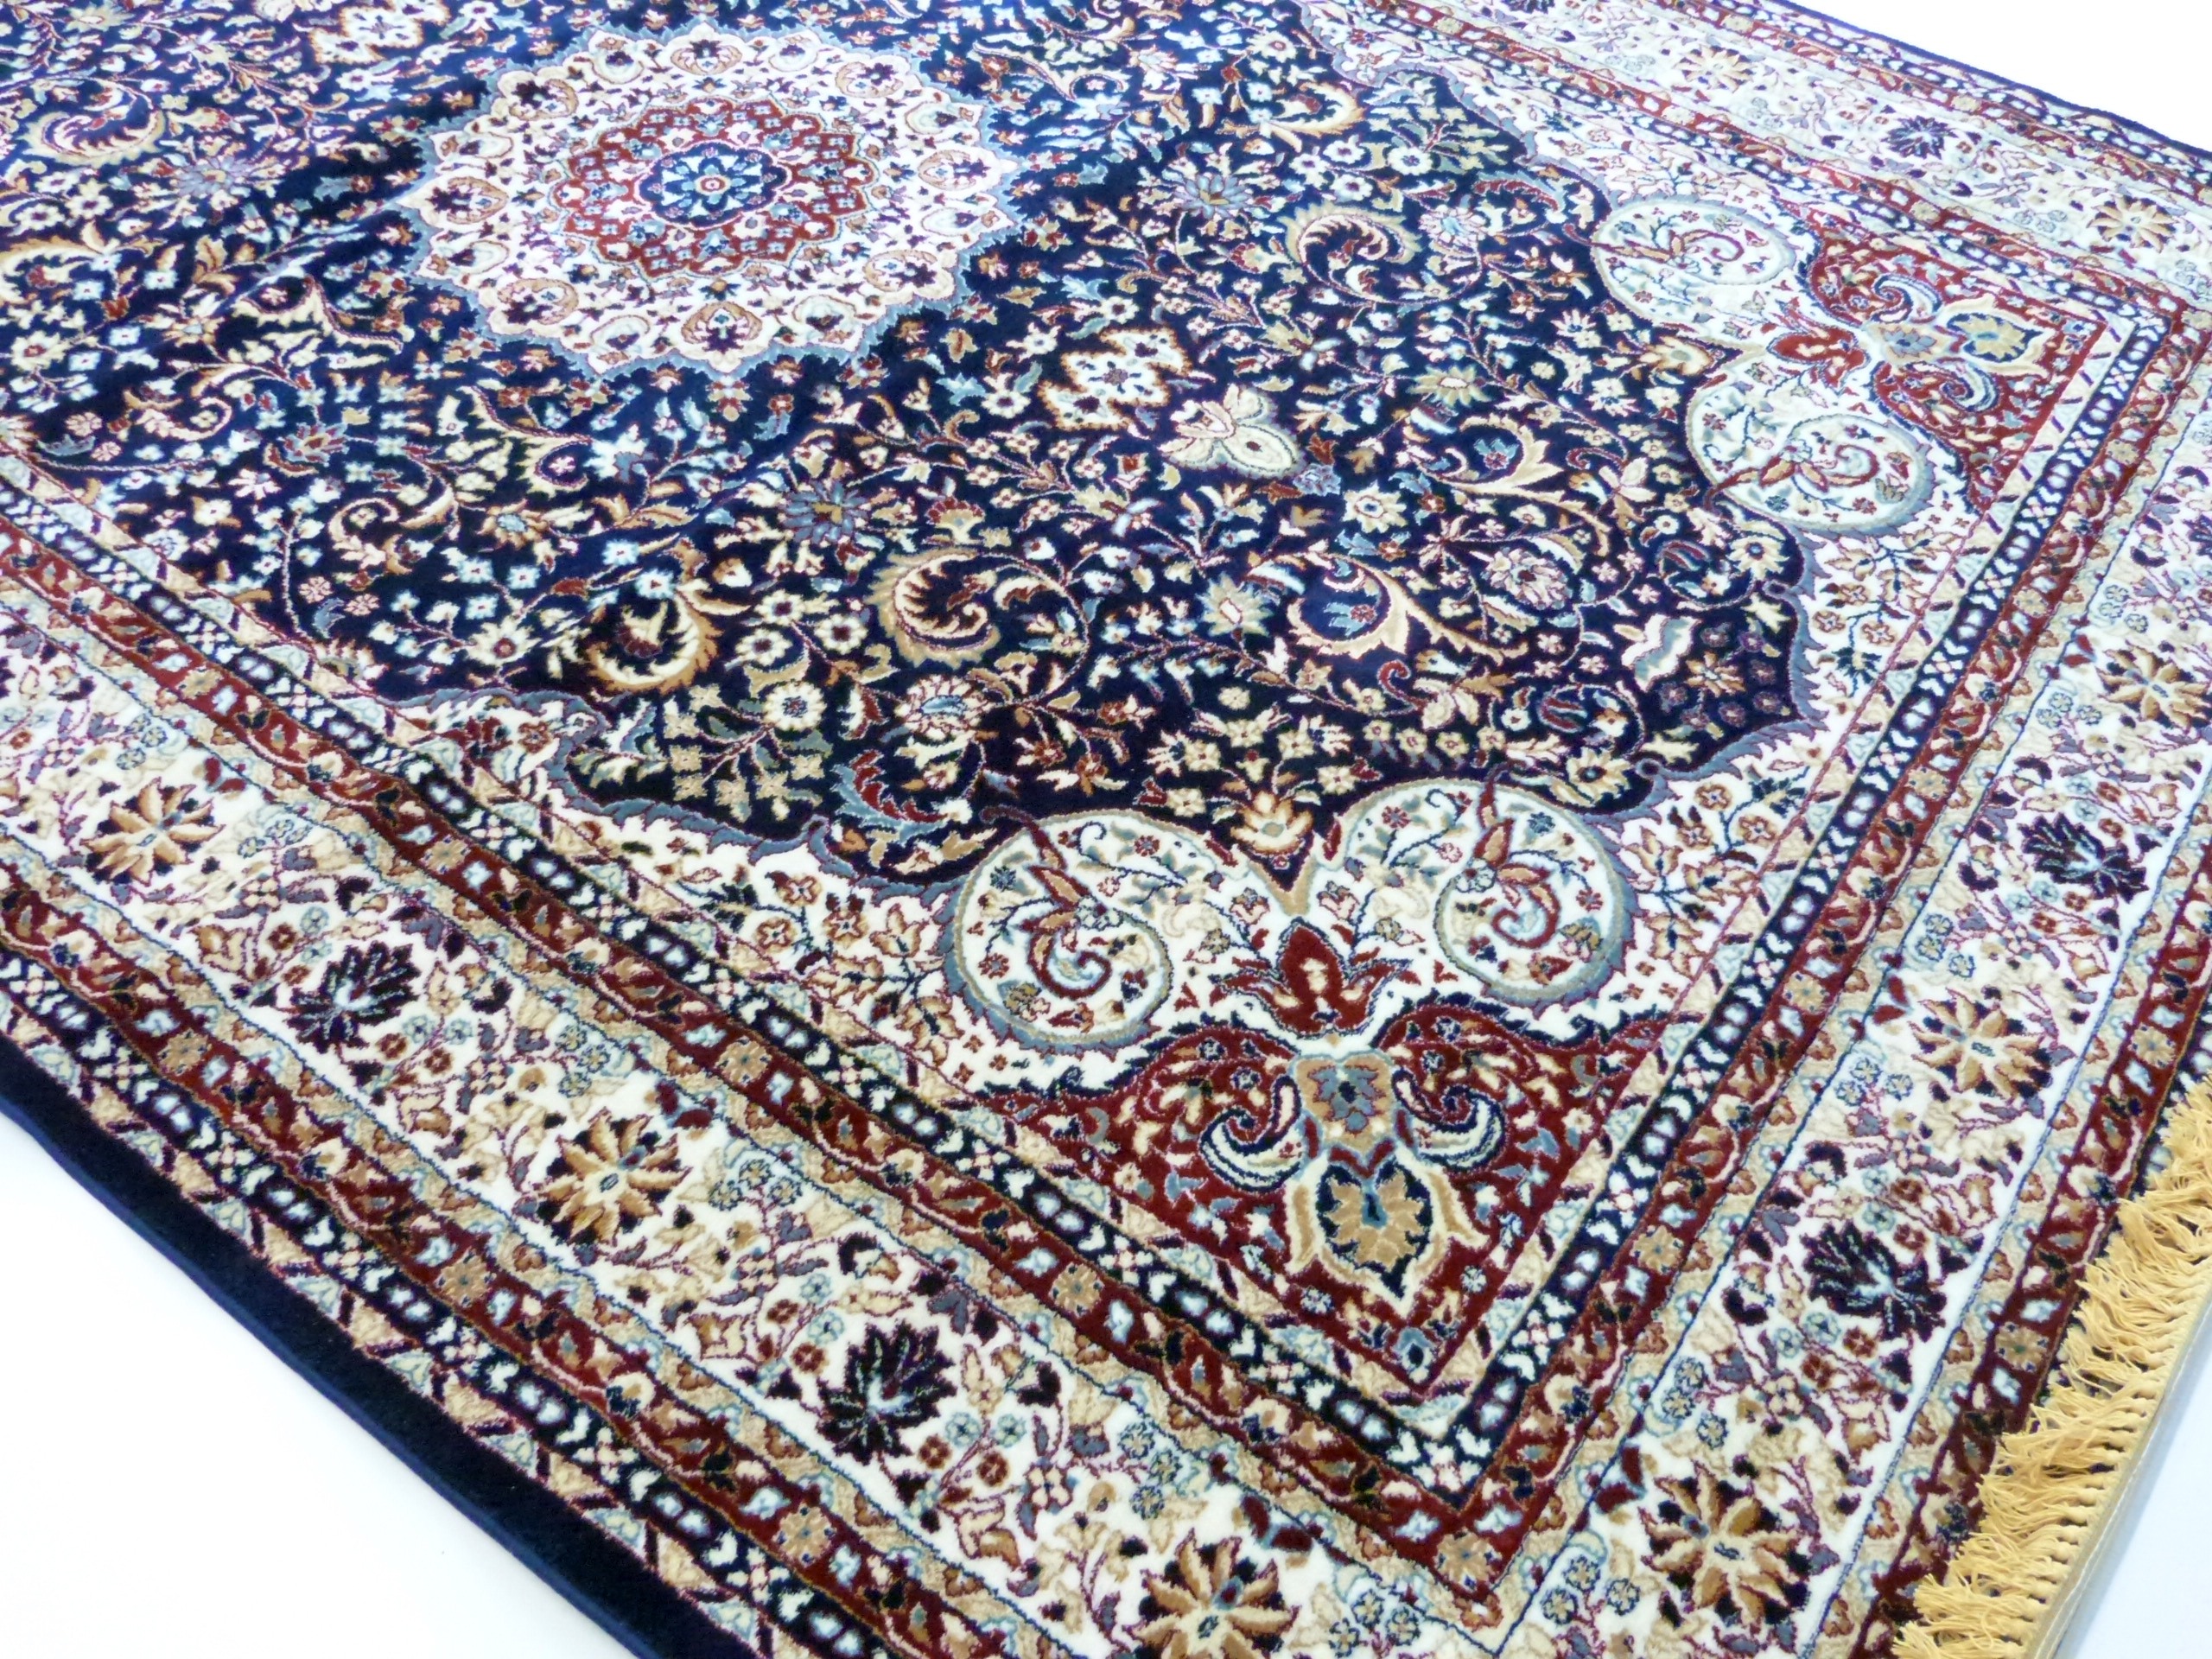 Rich blue ground full pile Turkish Carpet, with floral medallion design 320cm x 200cm approximately - Image 6 of 8